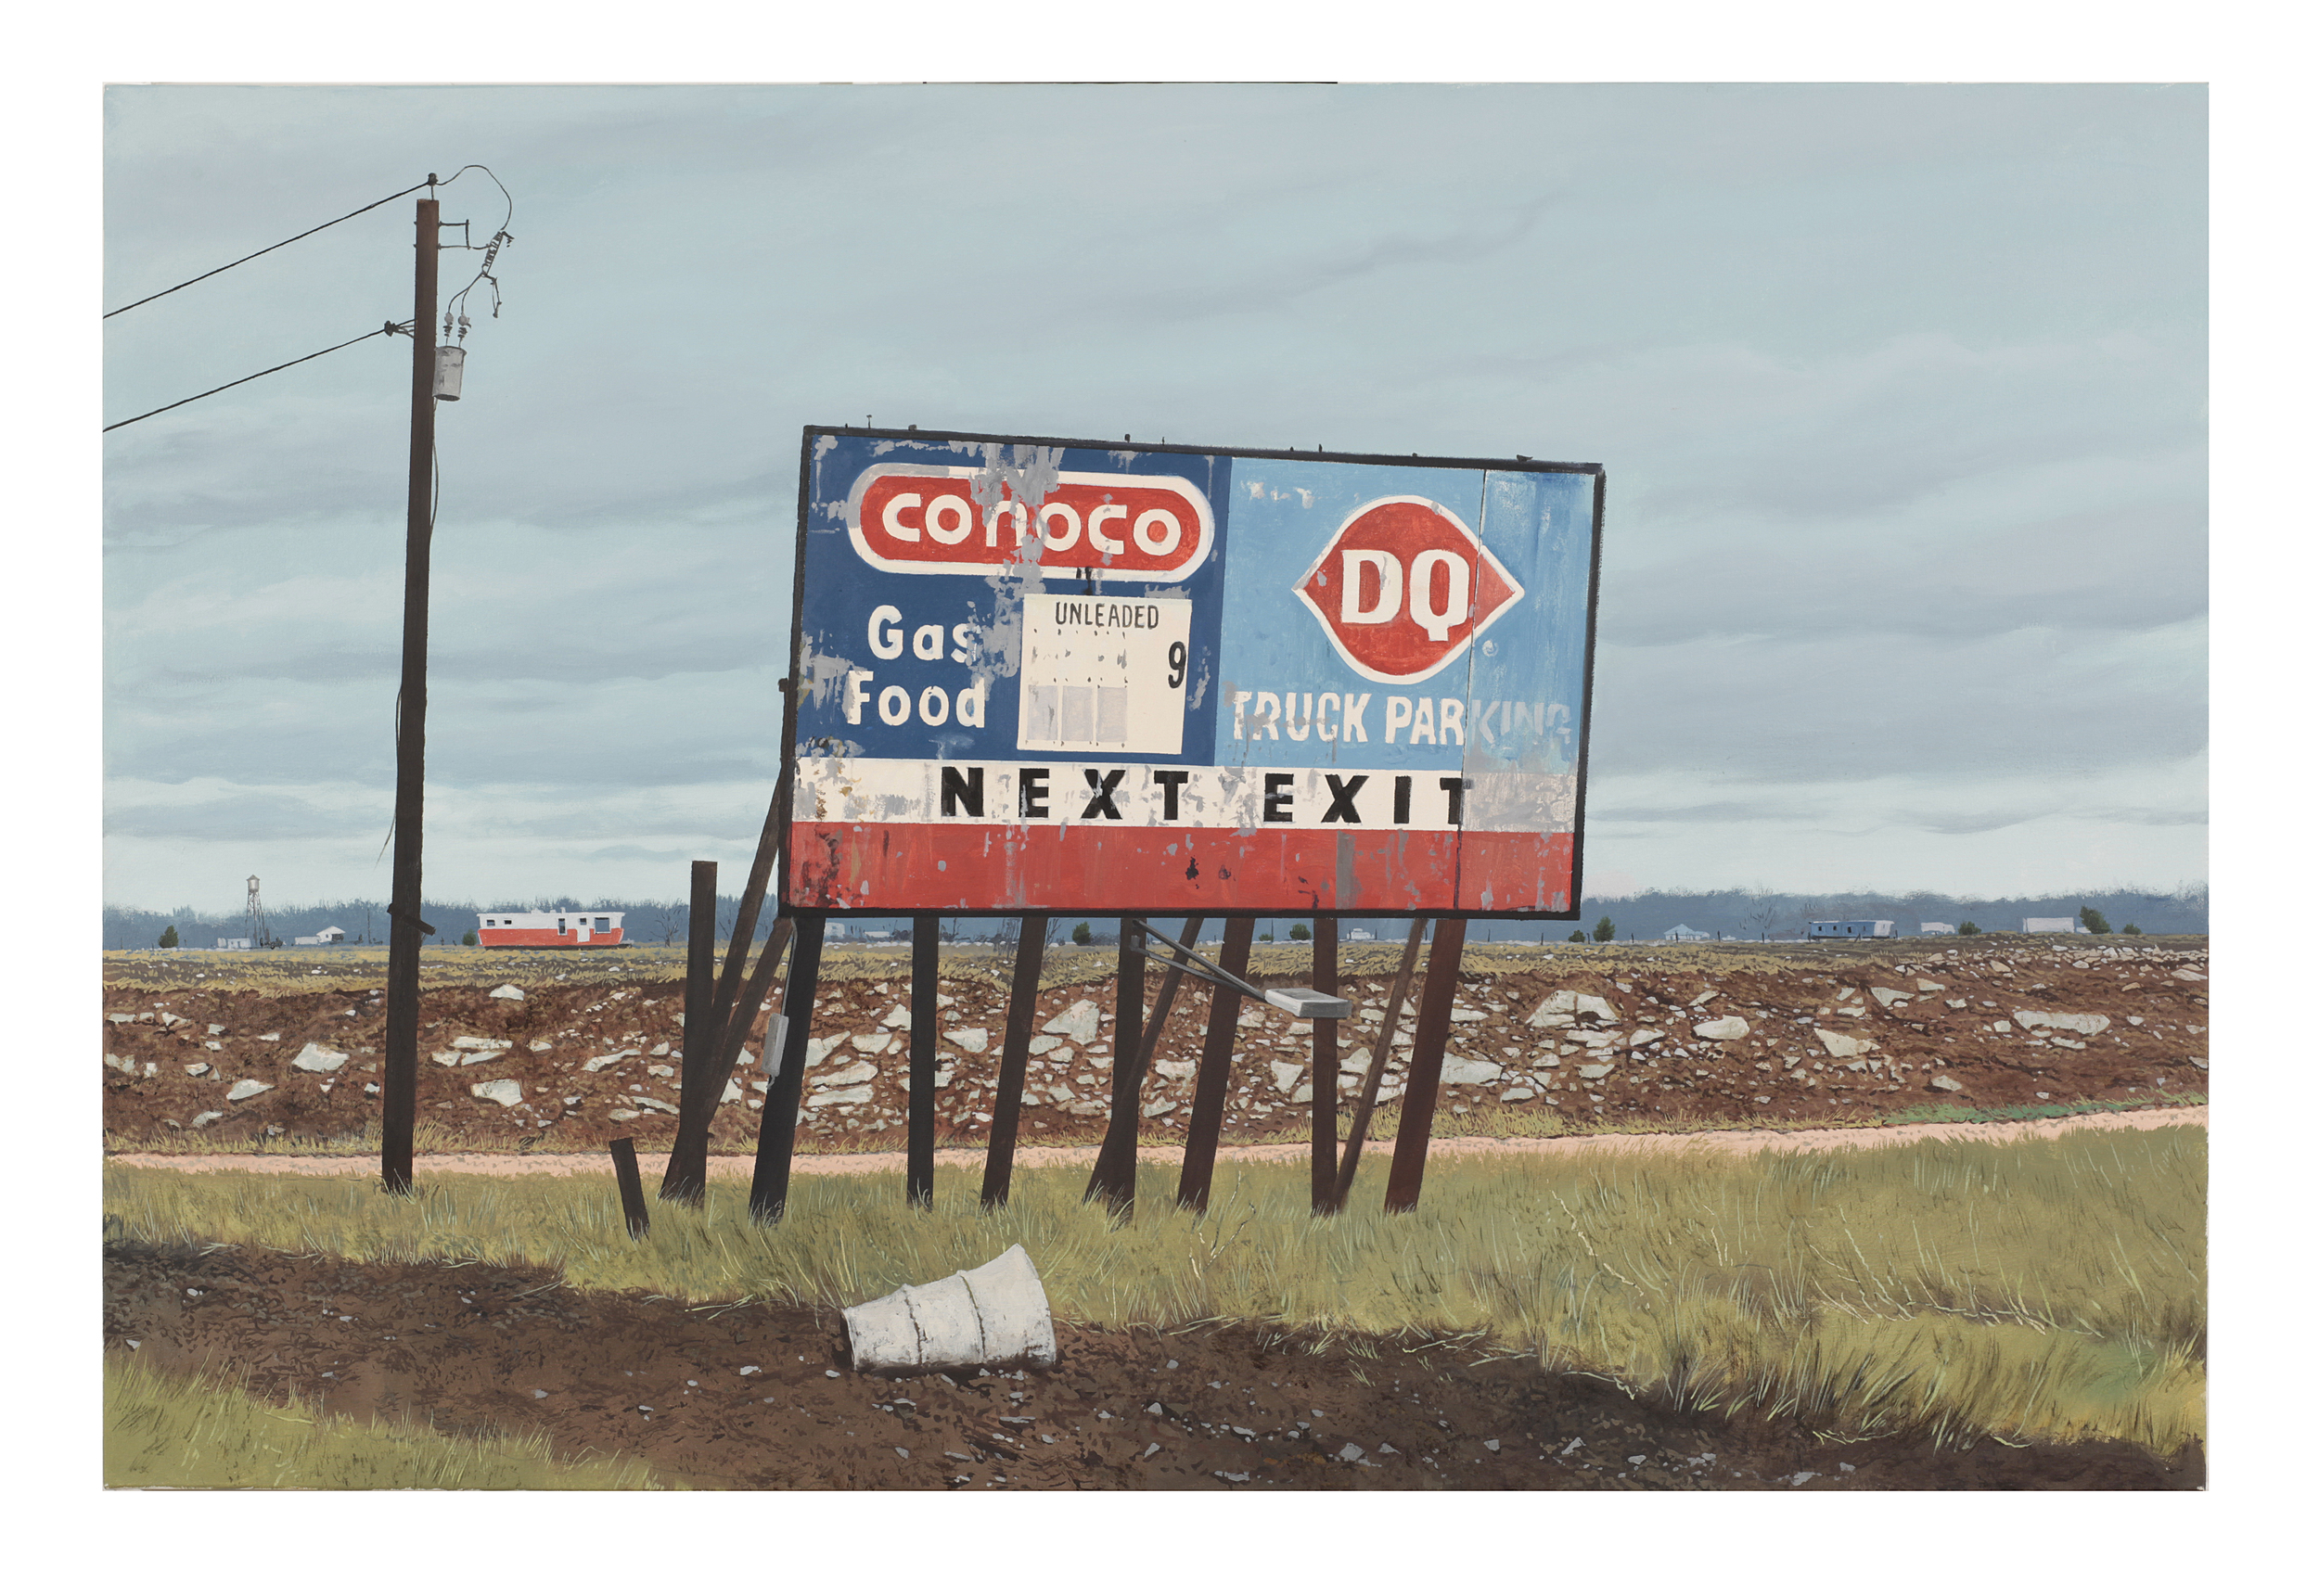 "Daniel Blagg,  Way to Midland,  oil on canvas, 40 x 60"" $11,000.  Contact Artspace111 to purchase."